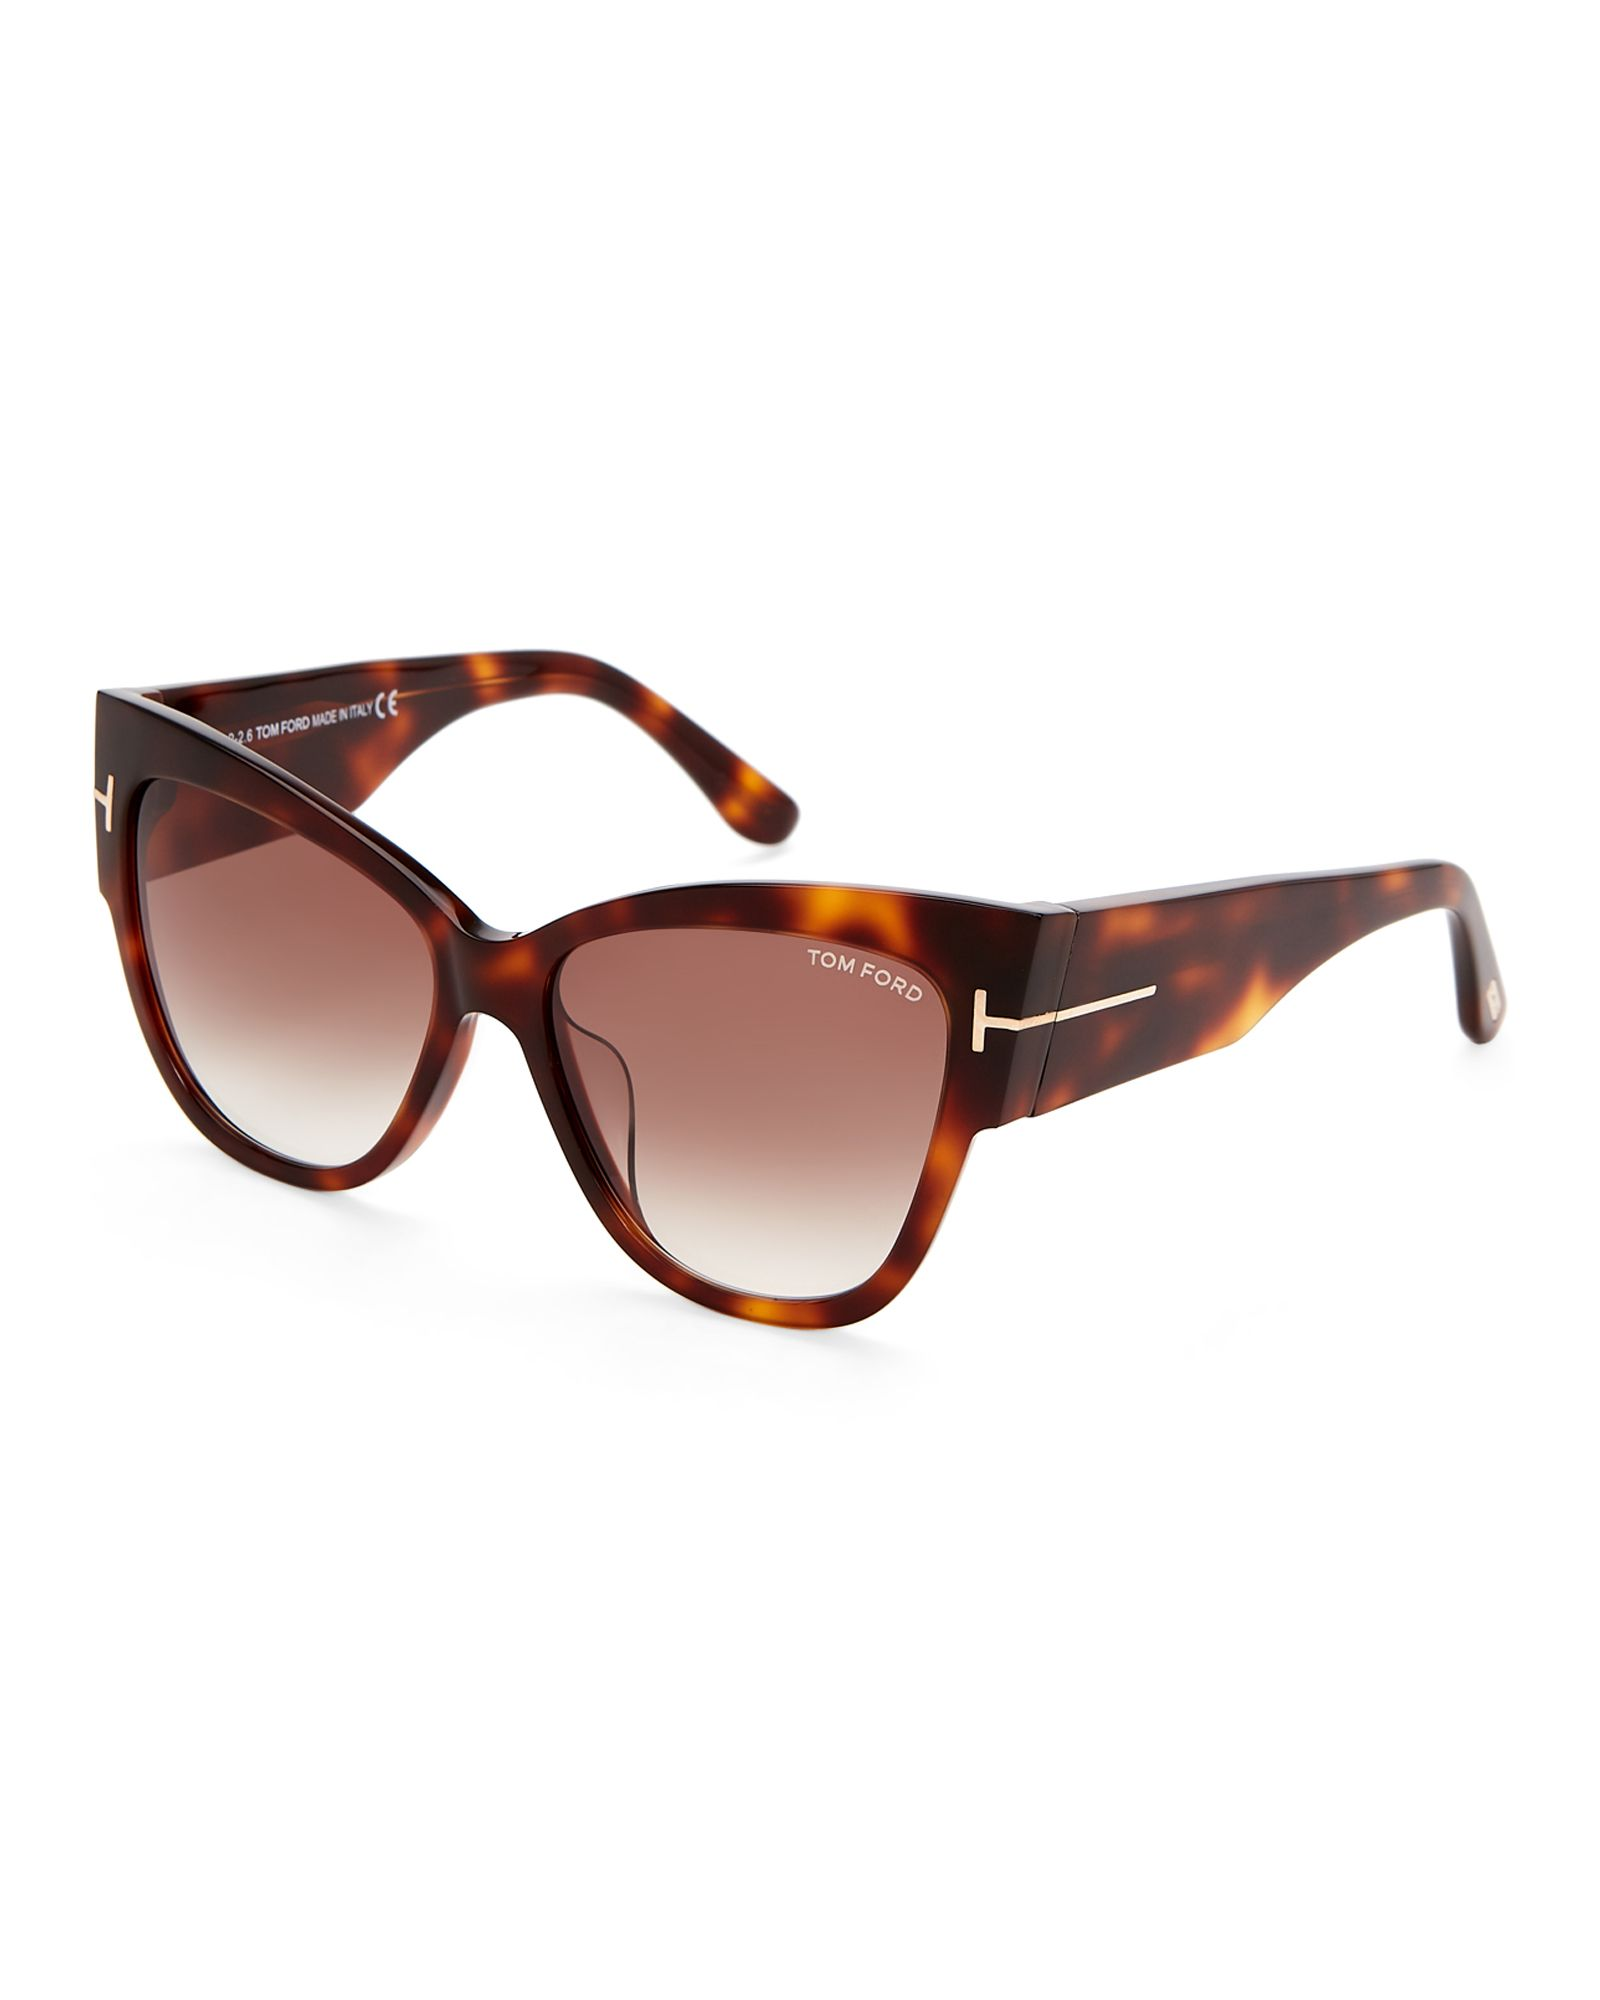 64d0cdf139d5 Tom Ford TF371 Anoushka Havana Cat Eye Sunglasses